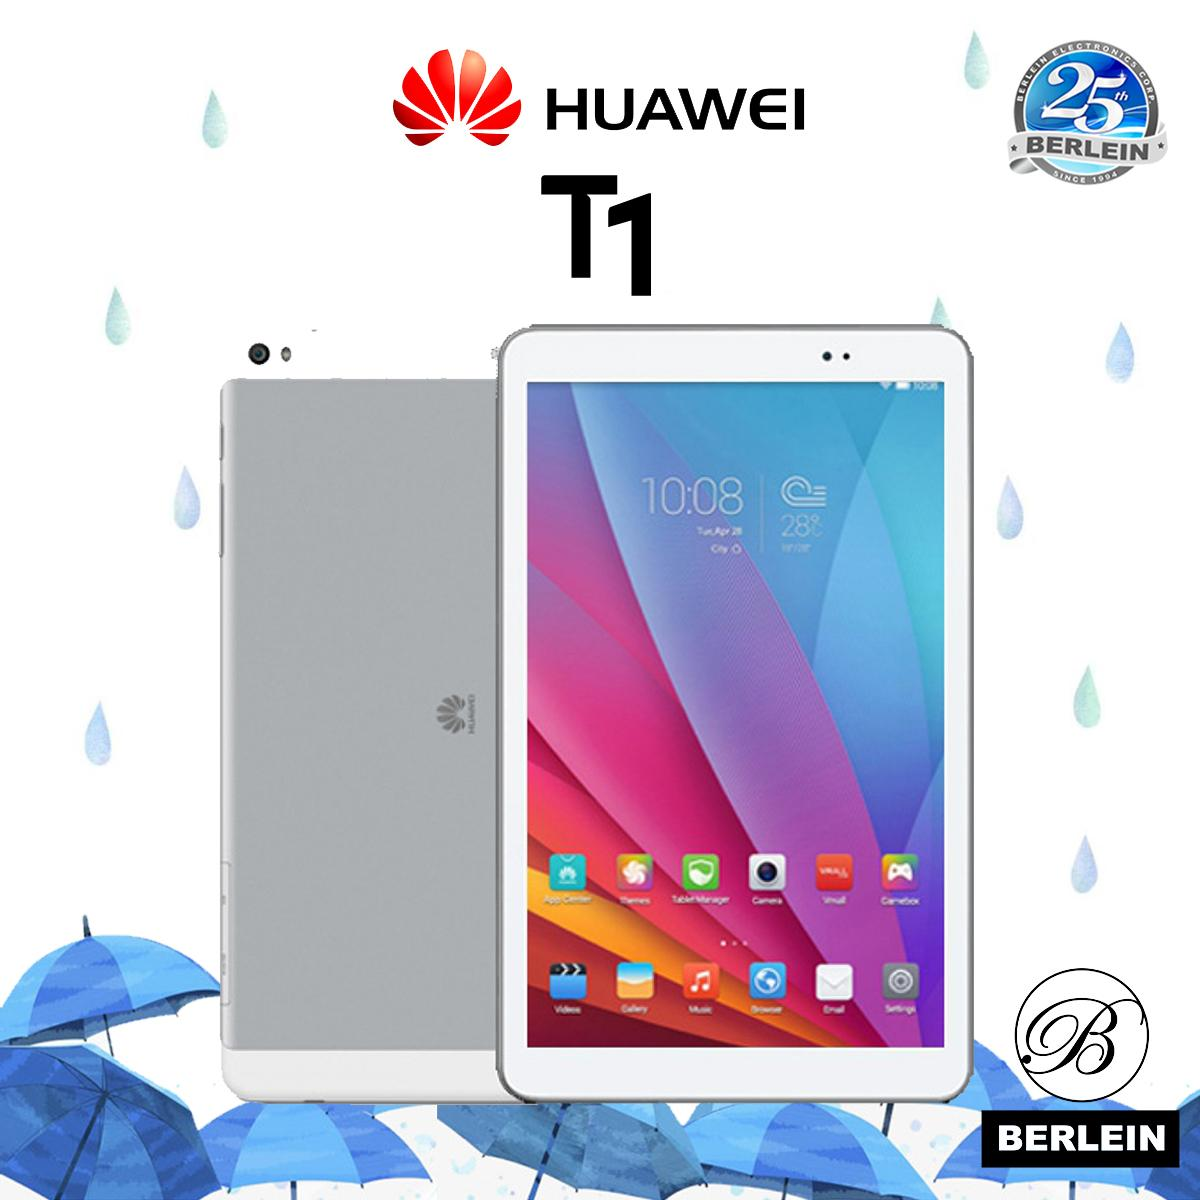 Huawei Tablet Philippines - Huawei Mobile Tablet for sale - prices